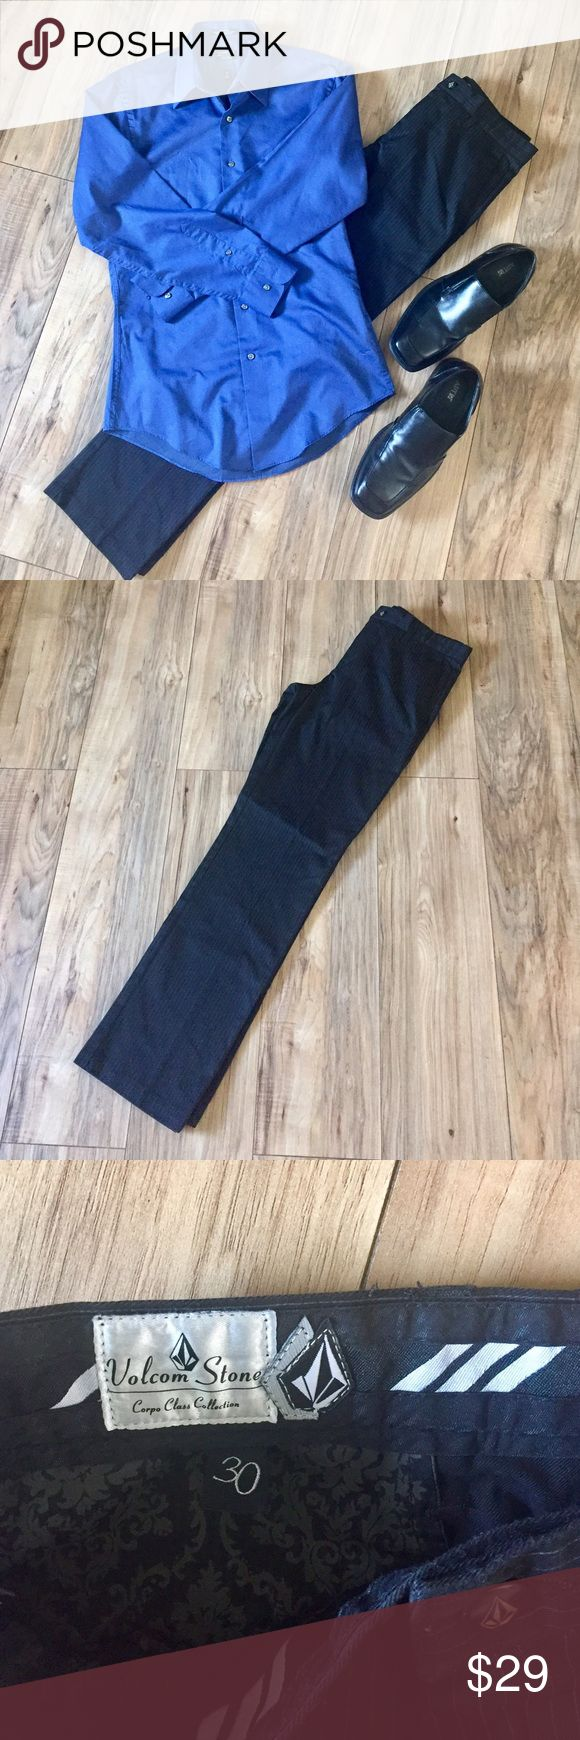 Men's Volcom Stone black pinstripe chinos Men's black pinstripe Volcom Stone Frickin' Chino Pants for PacSun. No, I wasn't frustrated when I described these pants- that's just the name! 😂 Worn once - perfect condition! 30Wx30L. Volcom Pants Chinos & Khakis